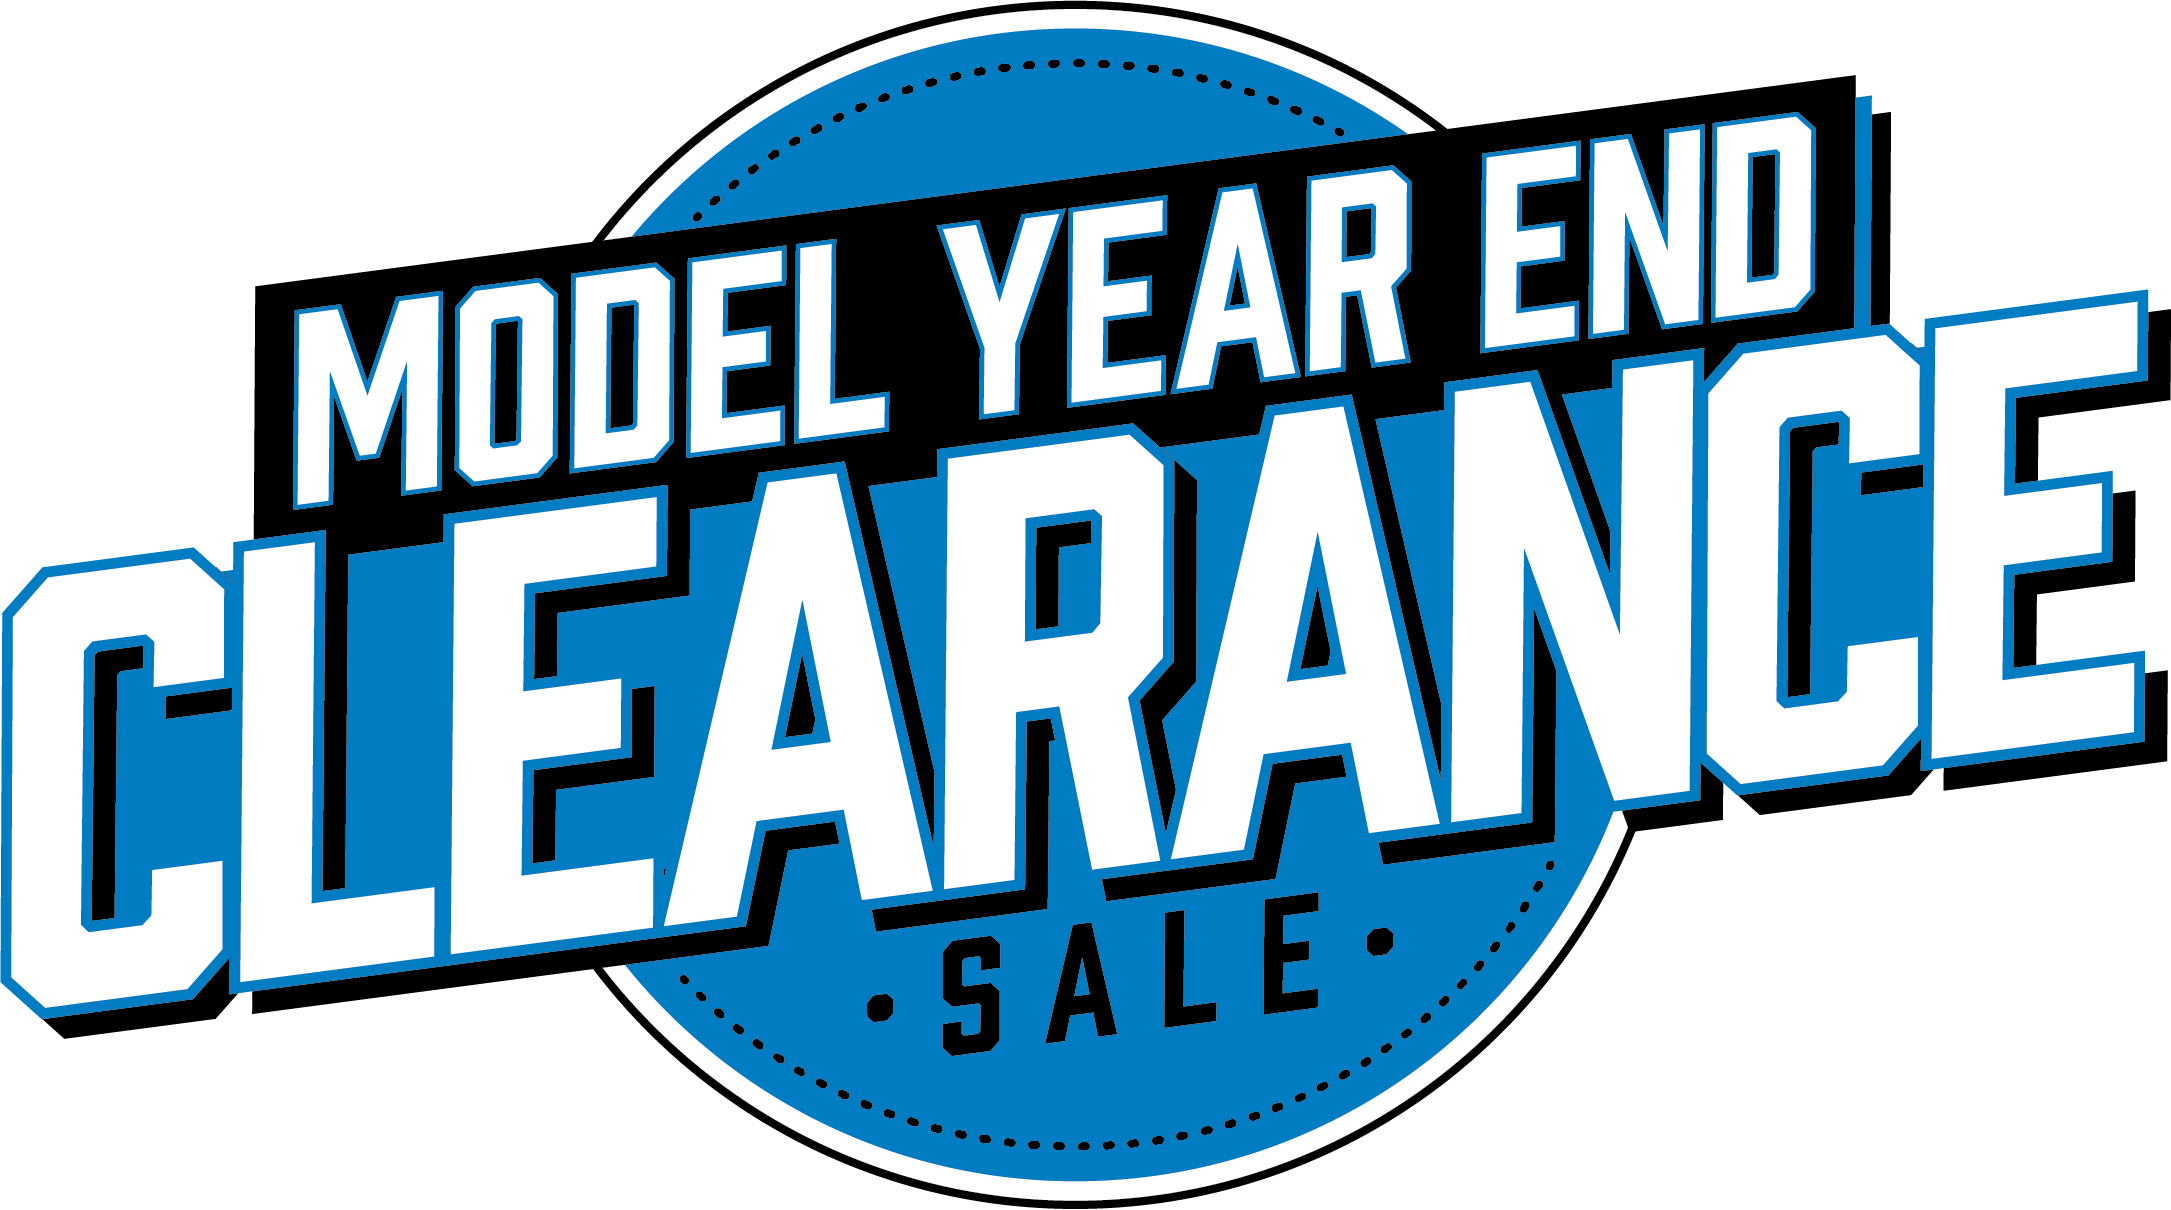 Model Year End Clearance Sale